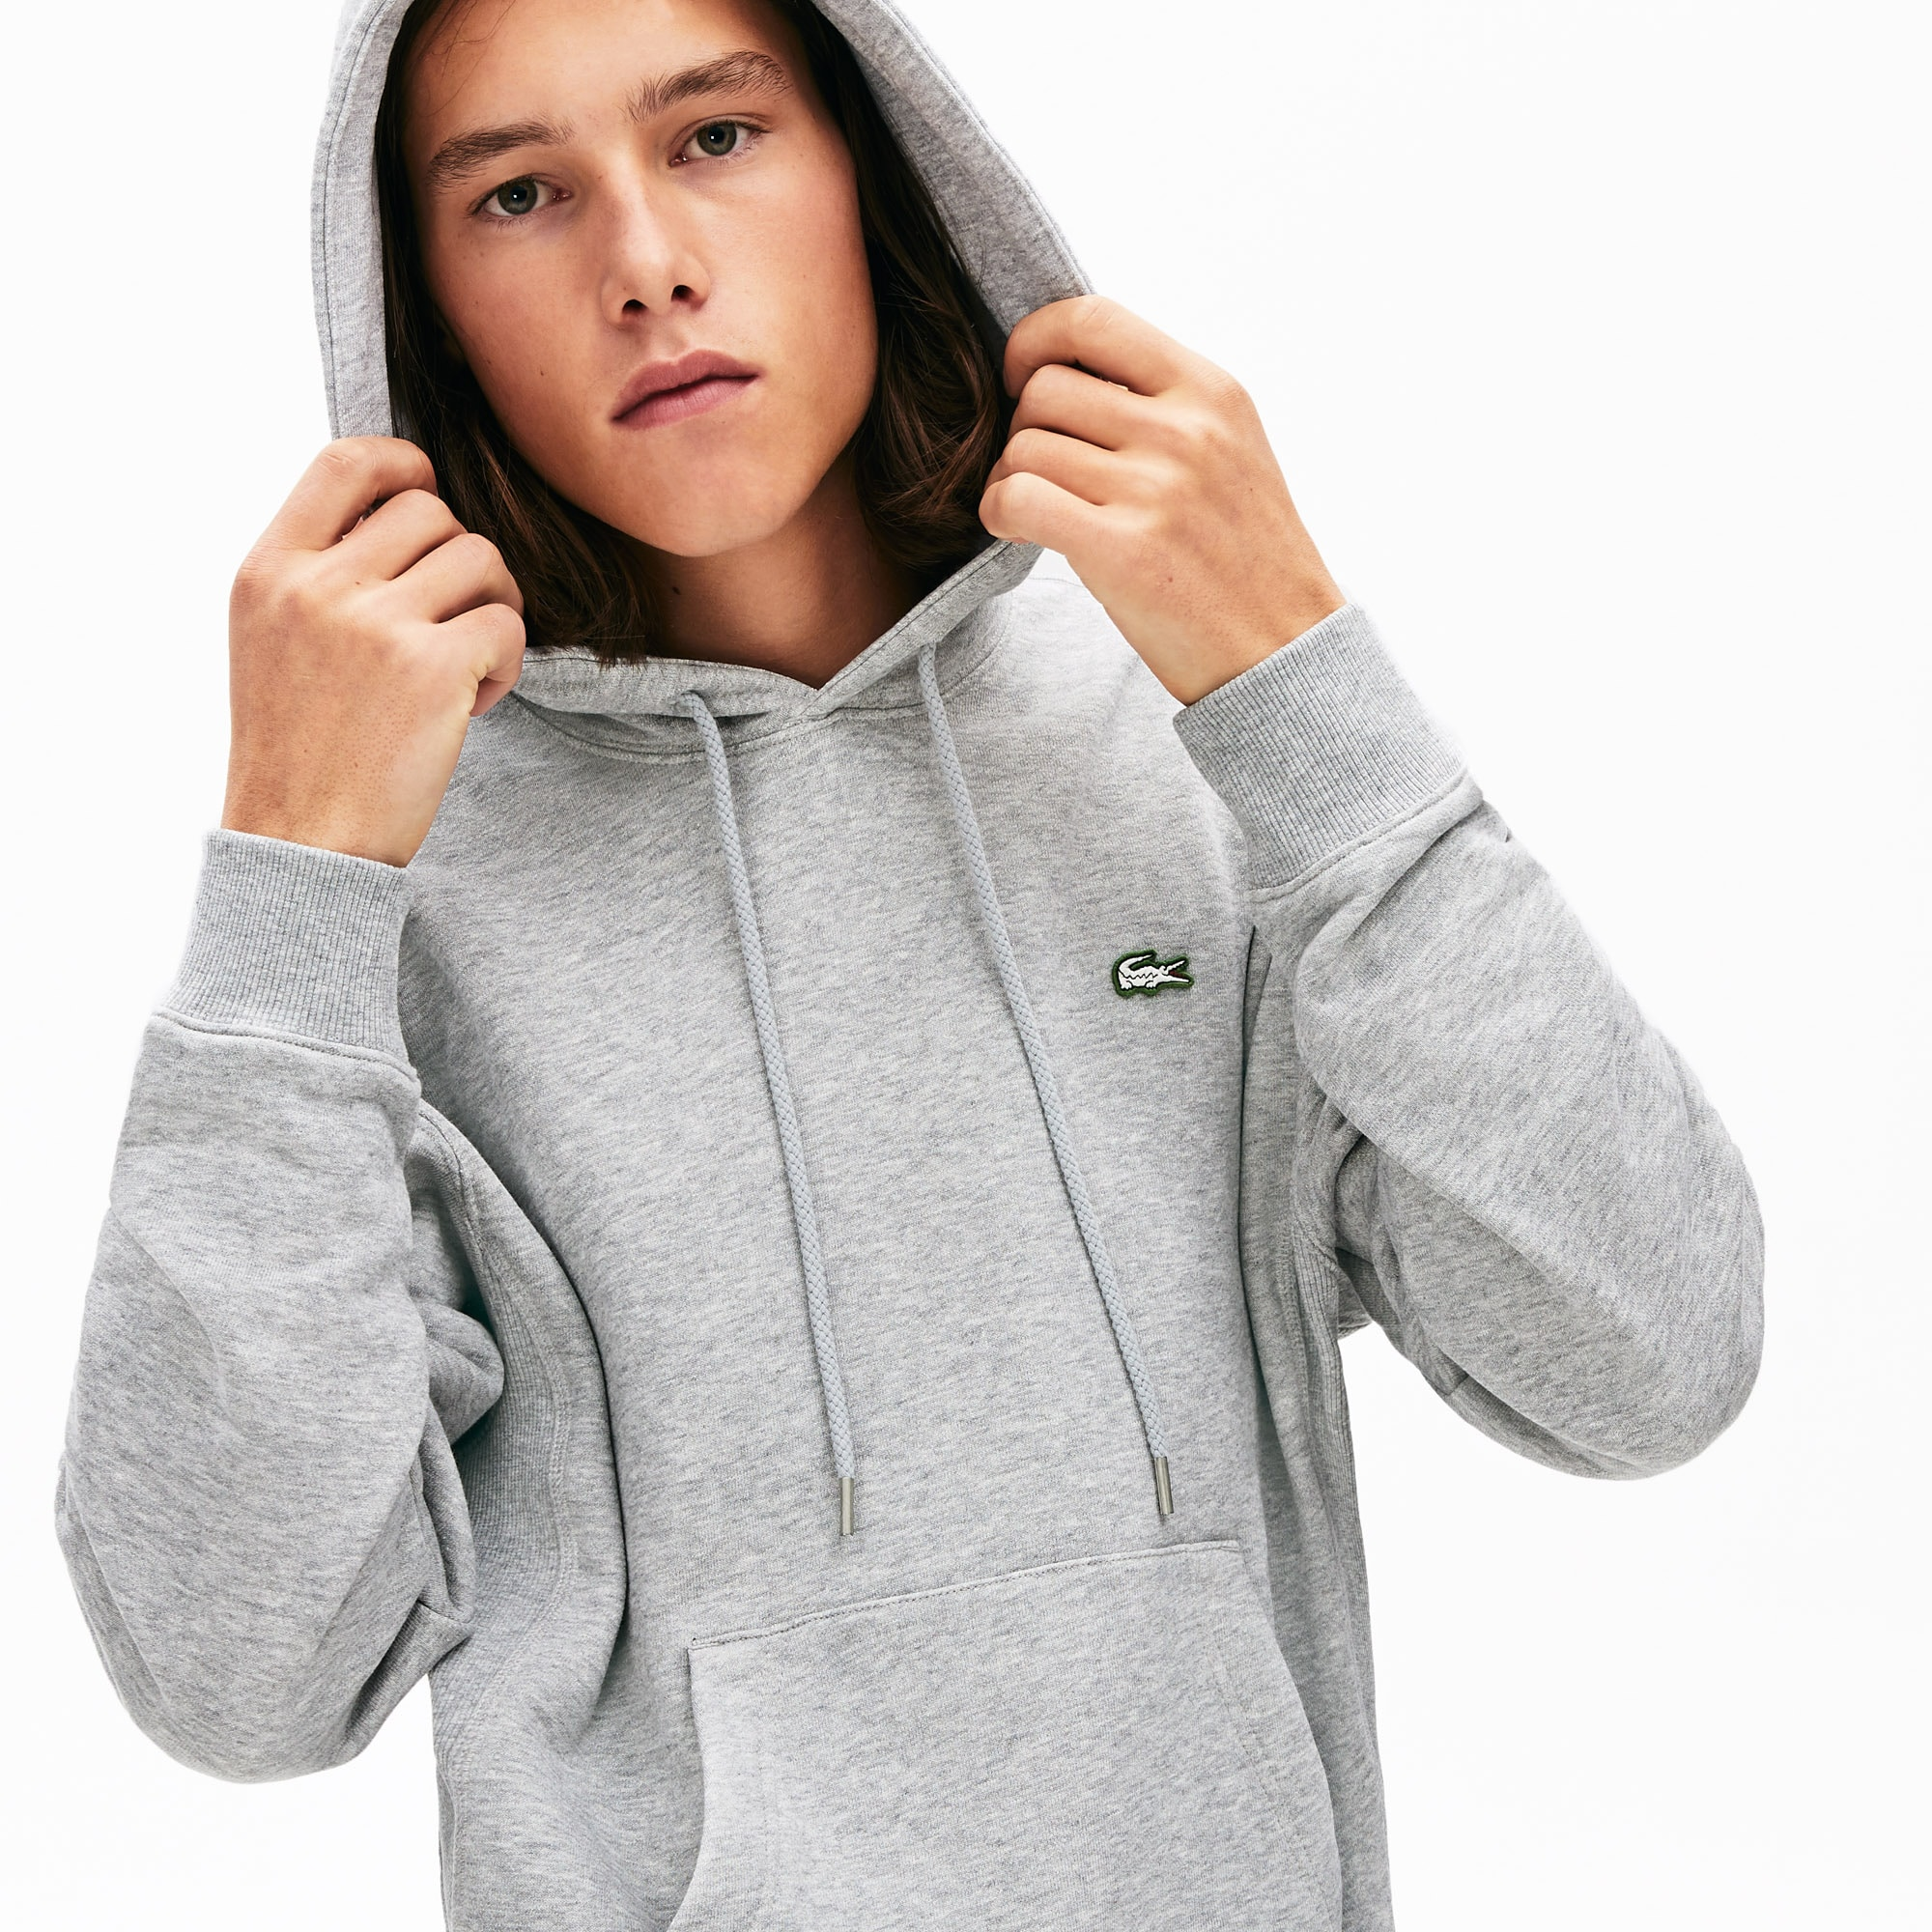 Unisex LIVE Kangaroo Pocket Hooded Sweatshirt